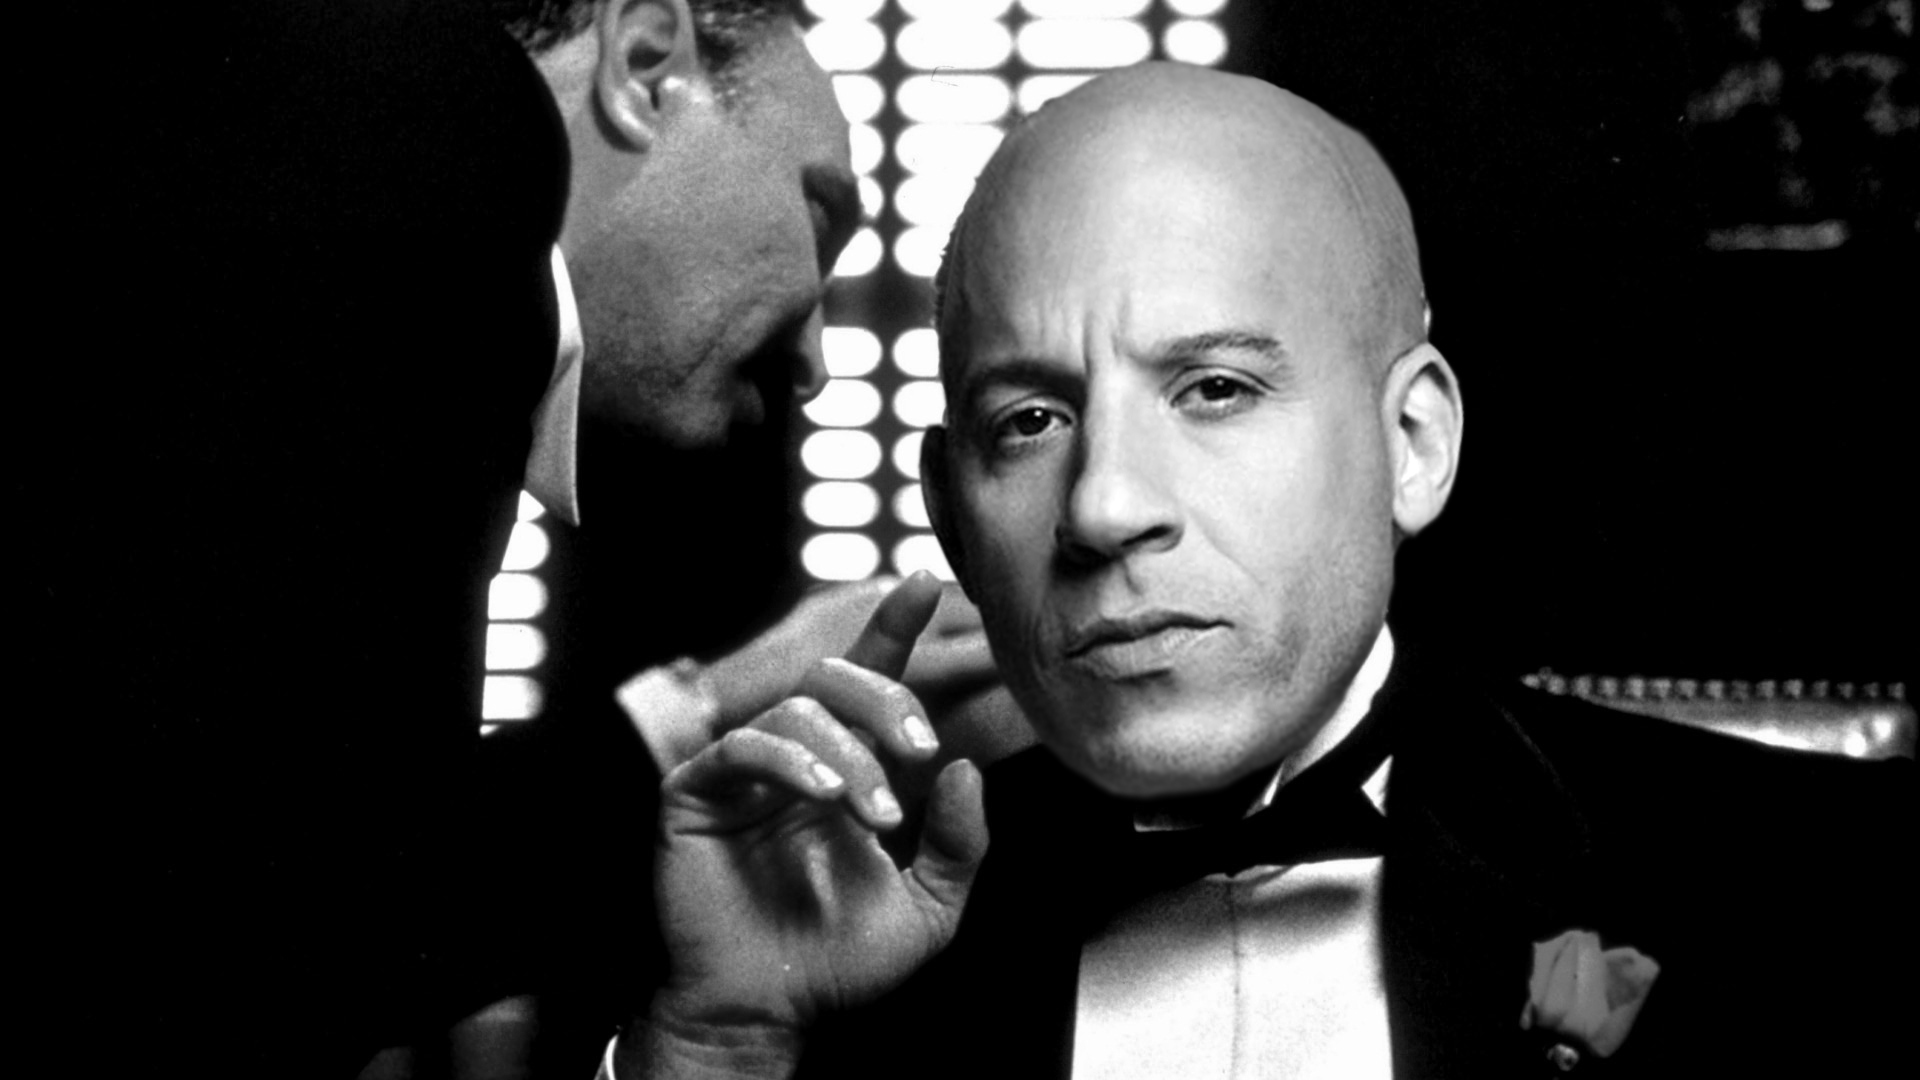 Vin Diesel as the Godfather Media by Austin Stephens